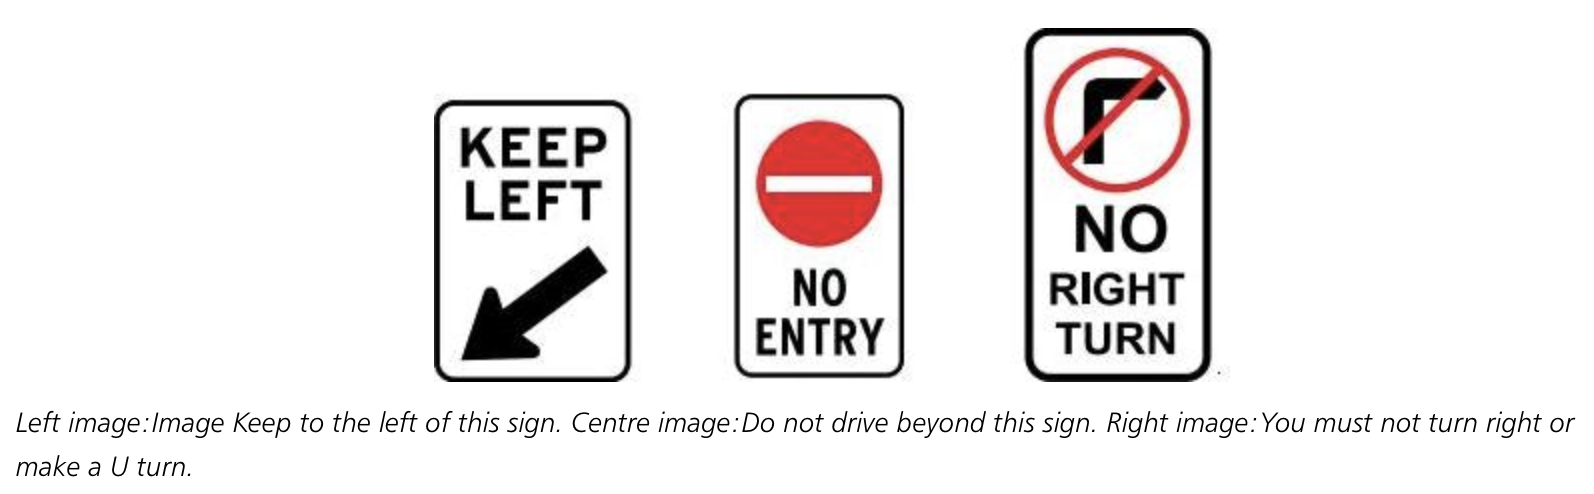 NSW road signs - Keep Left, No Entry, No right turn